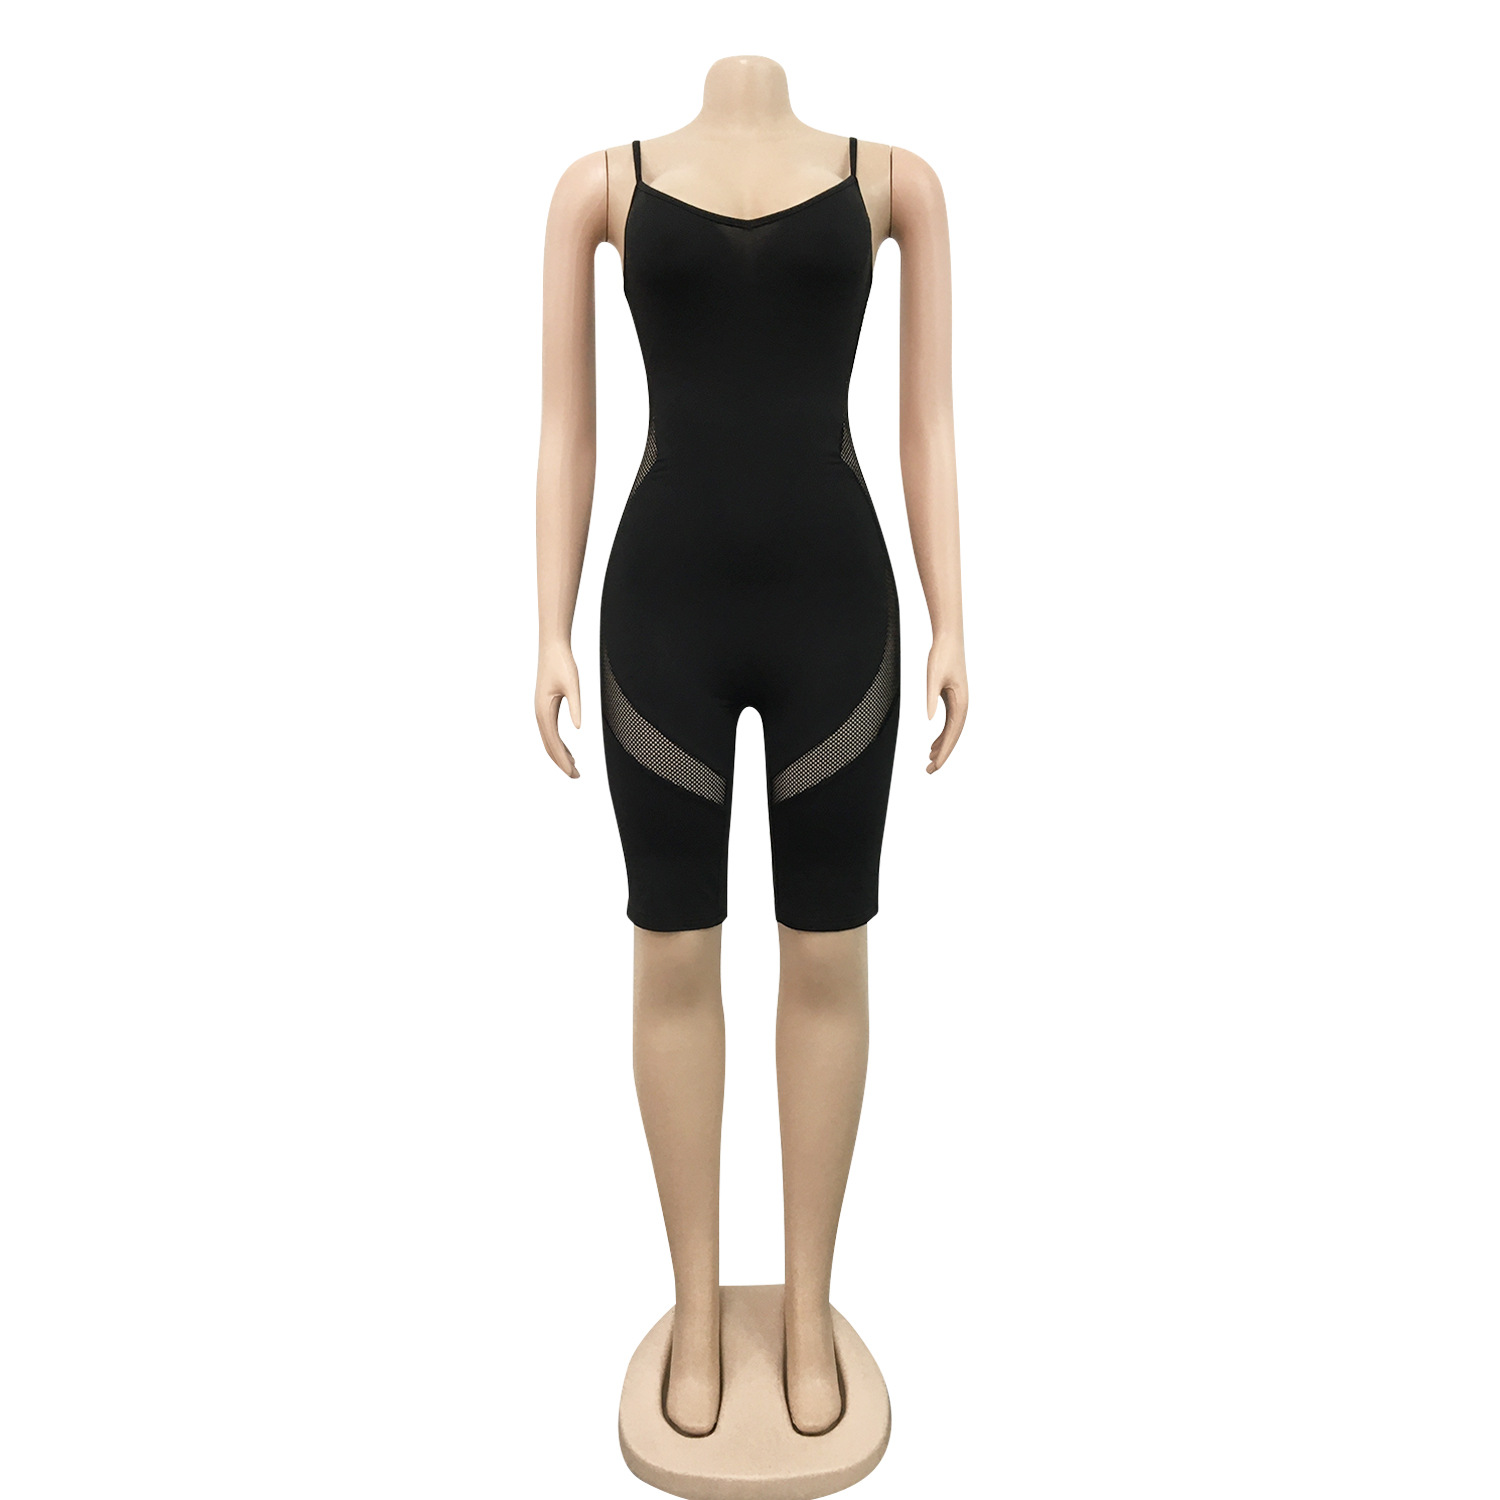 ANJAMANOR Sporty Sheer Mesh Insert Plus Size Rompers Sexy One Piece Shorts Jumpsuits for Women 2020 Dropshipping D42 BH16